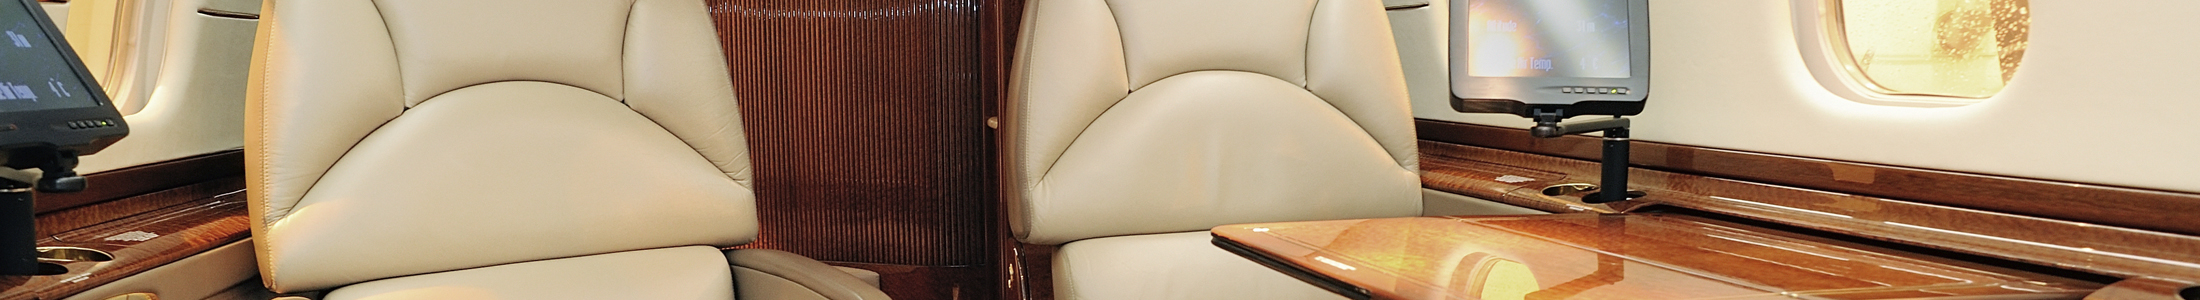 Leather Chairs Inside of Plane